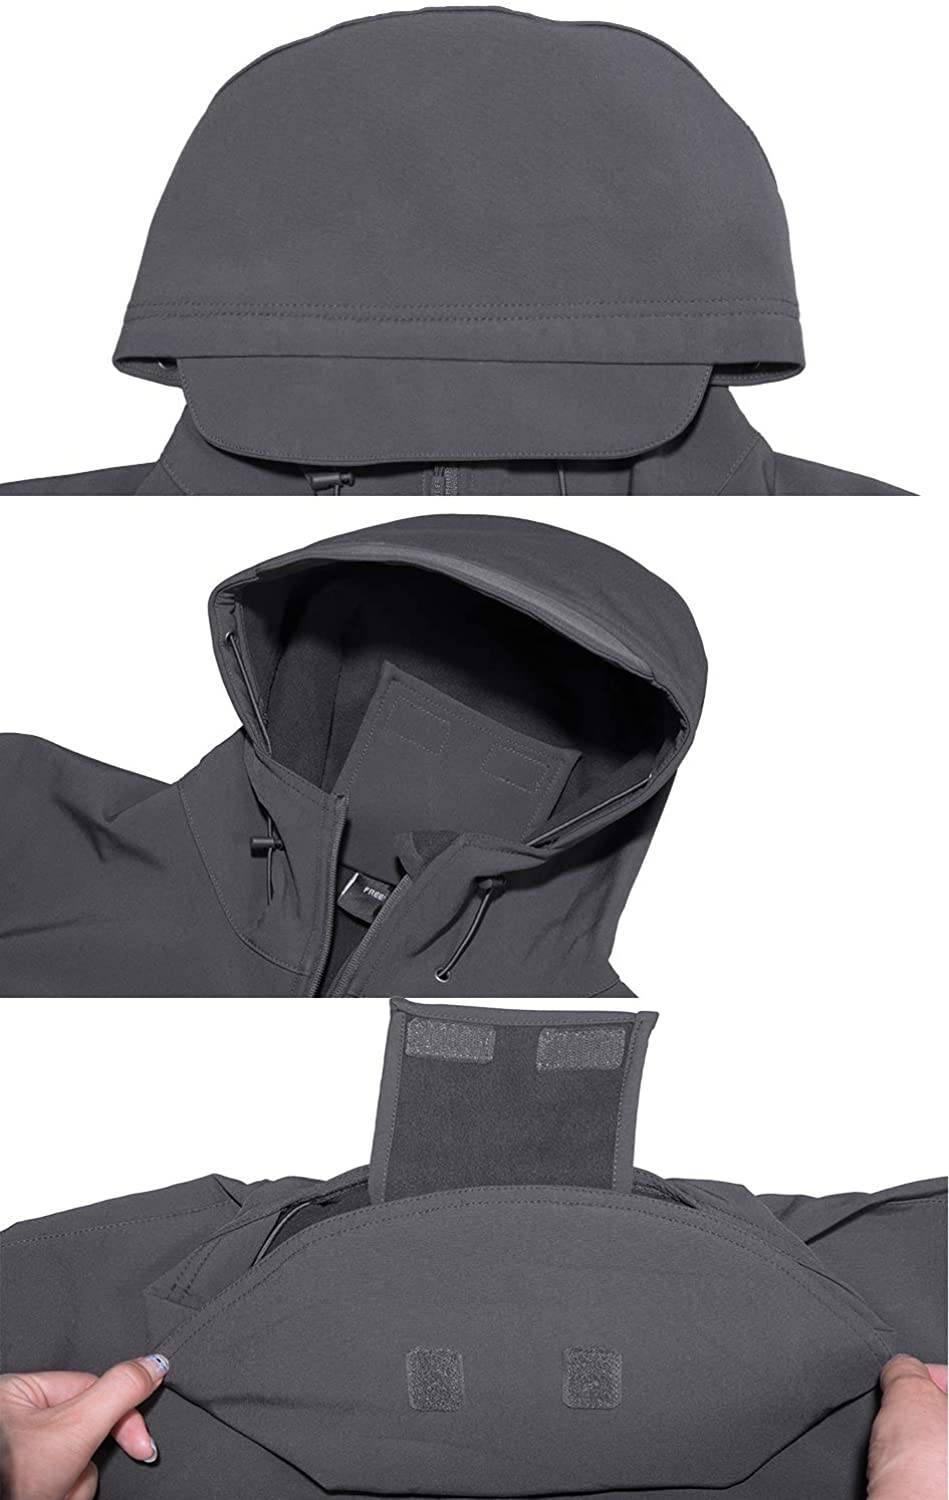 tactical jacket black |  tactical jacket with hood |  tactical jacket mens |  tactical jacket survival and outdoor |  tactical jackets for sale |  tactical jacket womens |  tactical jackets made in usa |  tactical jacket review |  tactical jacket made in usa |  tactical jacket for dogs |  tactical jacket amazon |  tactical jacket and pants |  tactical jacket australia |  tactical jacket aliexpress |  tactical jacket army |  tactical armory jacket |  tactical anorak jacket |  tactical ambulance jacket |  the tactical jacket |  the tactical jacket review |  jacket and tactical vest |  tactical jacket big and tall |  tactical jacket brands |  tactical jacket brown |  tactical jacket blue |  tactical jacket bomber |  tactical blazer jacket |  tactical battle jacket |  tactical jacket concealed carry |  tactical jacket coyote |  tactical jacket canada |  tactical jacket camo |  tactical jacket condor |  tactical jacket cold weather |  tactical jacket cordura |  tactical jacket clearance |  tactical jacket dayz |  tactical jacket design |  tactical jacket drab |  tactical down jacket |  tactical dog jacket |  tactical denim jacket |  tactical duty jacket |  tactical dress jacket |  tactical jacket ebay |  tactical ems jacket |  viper tactical elite jacket |  5.11 tactical ems jacket |  viper tactical elite jacket titanium |  viper tactical elite jacket black |  esdy tactical jacket |  han wild tactical equipment jacket |  tactical jacket for sale |  tactical jacket for sale philippines |  tactical jacket fashion |  tactical jacket for winter |  tactical jacket flight |  tactical fleece jacket |  tactical field jacket |  tactical jacket green |  tactical jacket grey |  tactical jacket gore tex |  tactical jacket gun |  tactical jacket graphite |  tactical grizzly jacket |  tactical gear jacket |  tactical grizzly jacket review |  tactical jacket hunting |  tactical hoodie jacket |  tactical hooded jacket |  tactical hardshell jacket |  tactical half jacket |  tactical heat